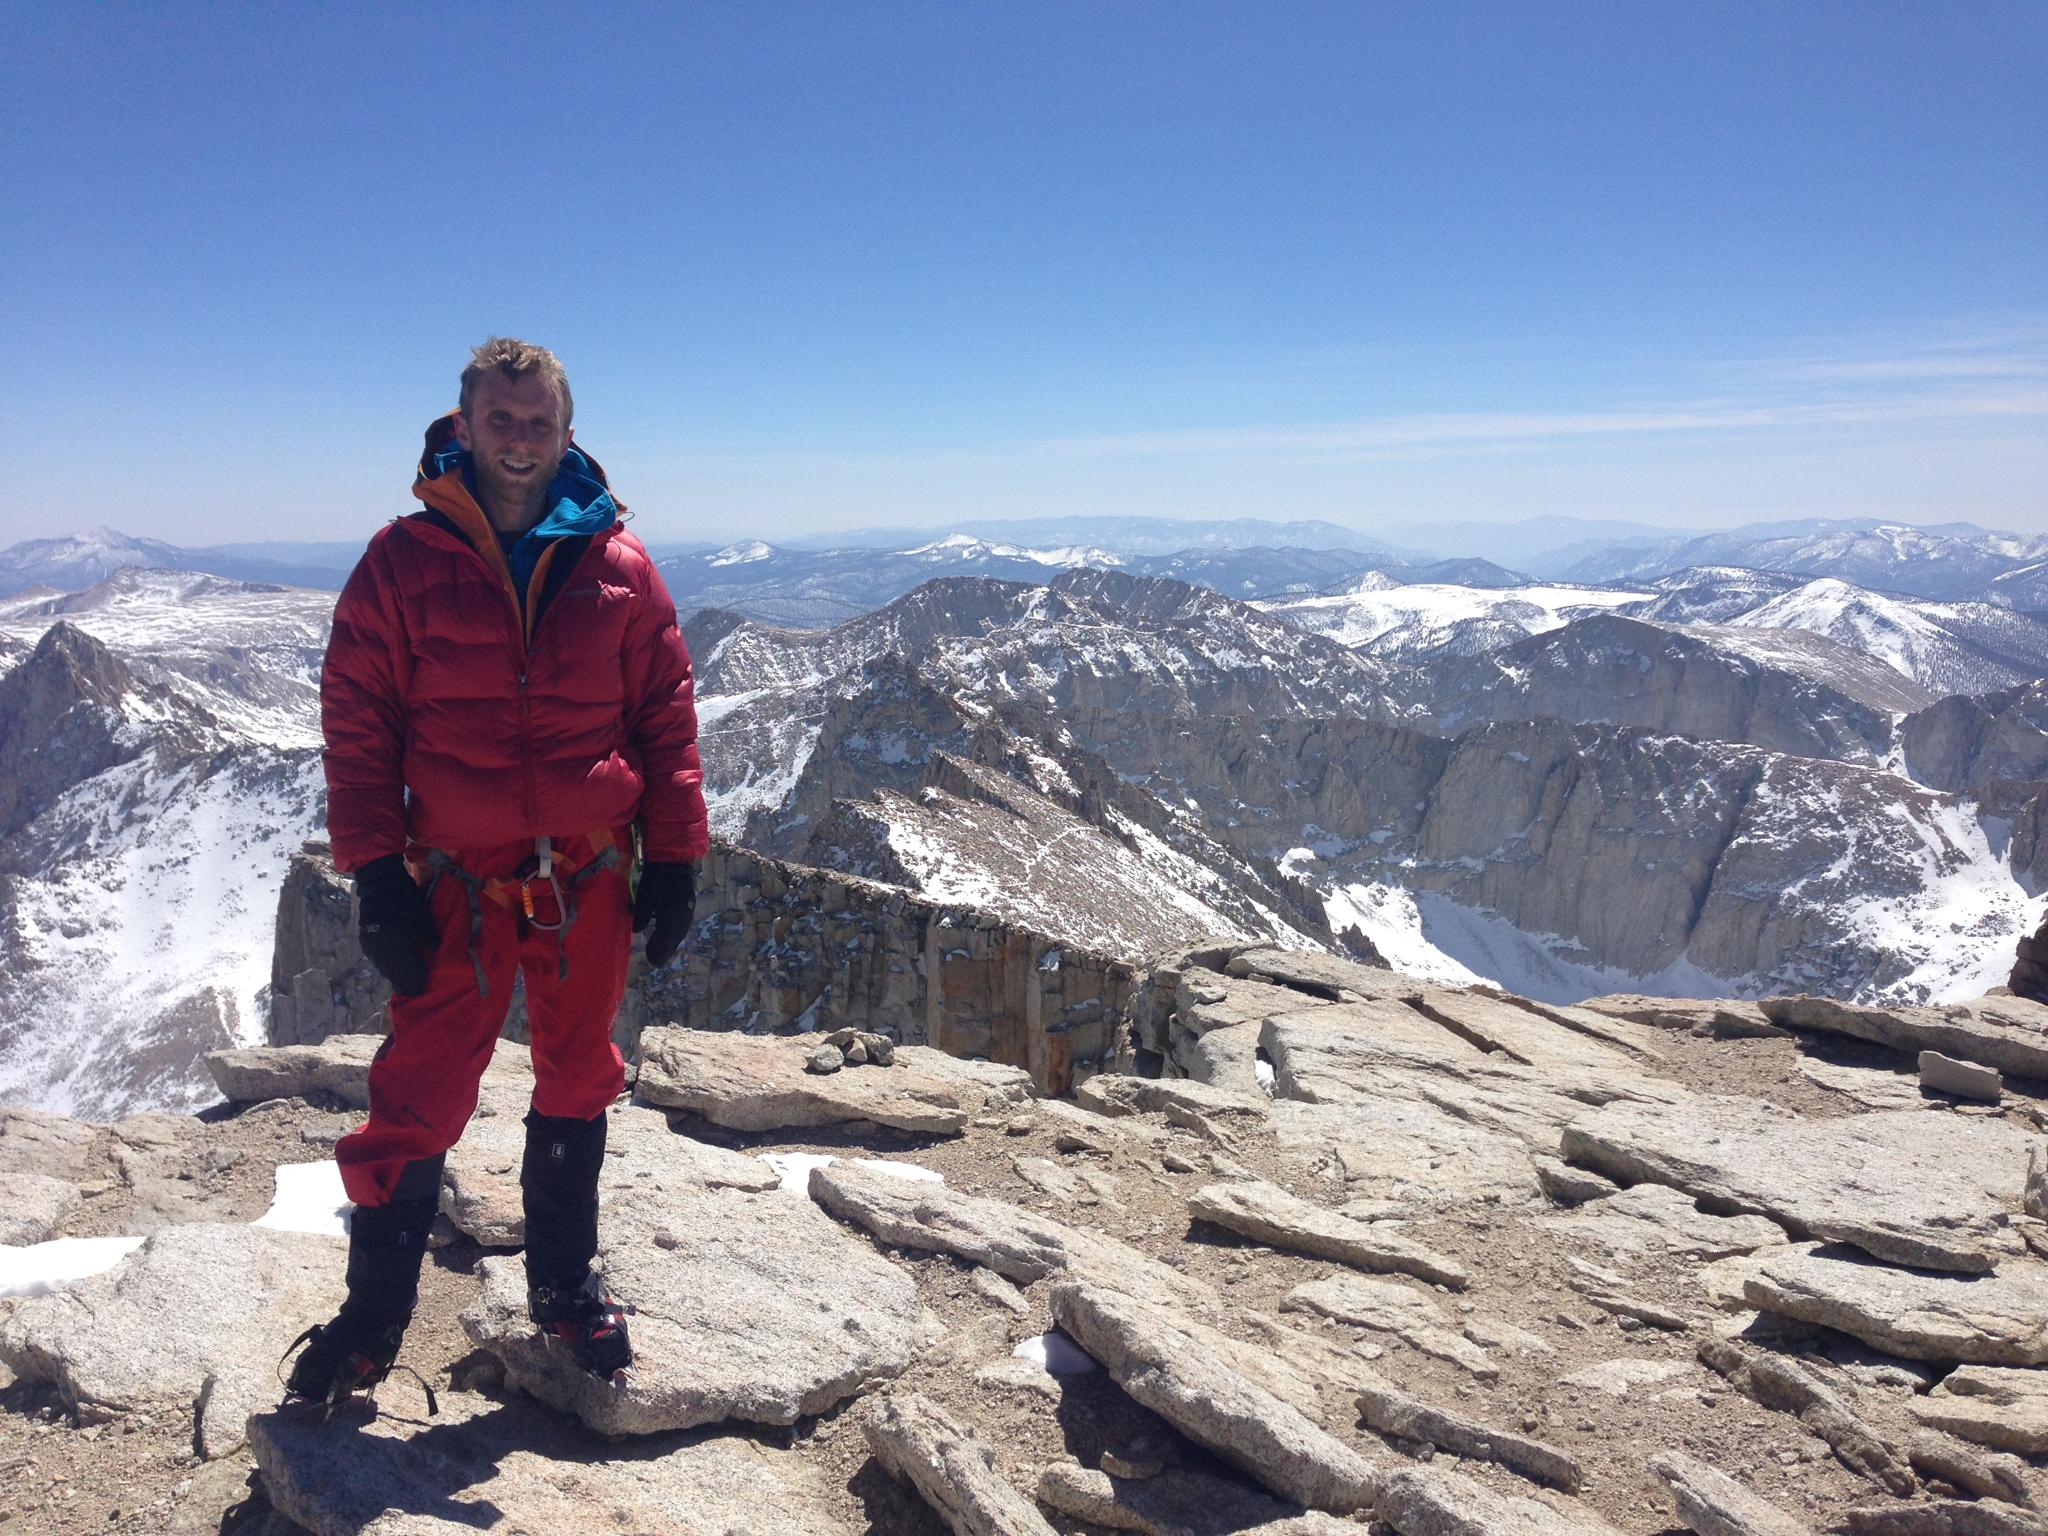 Trip Report: Mt. Whitney Mountaineer's Route March 22-24, 2013